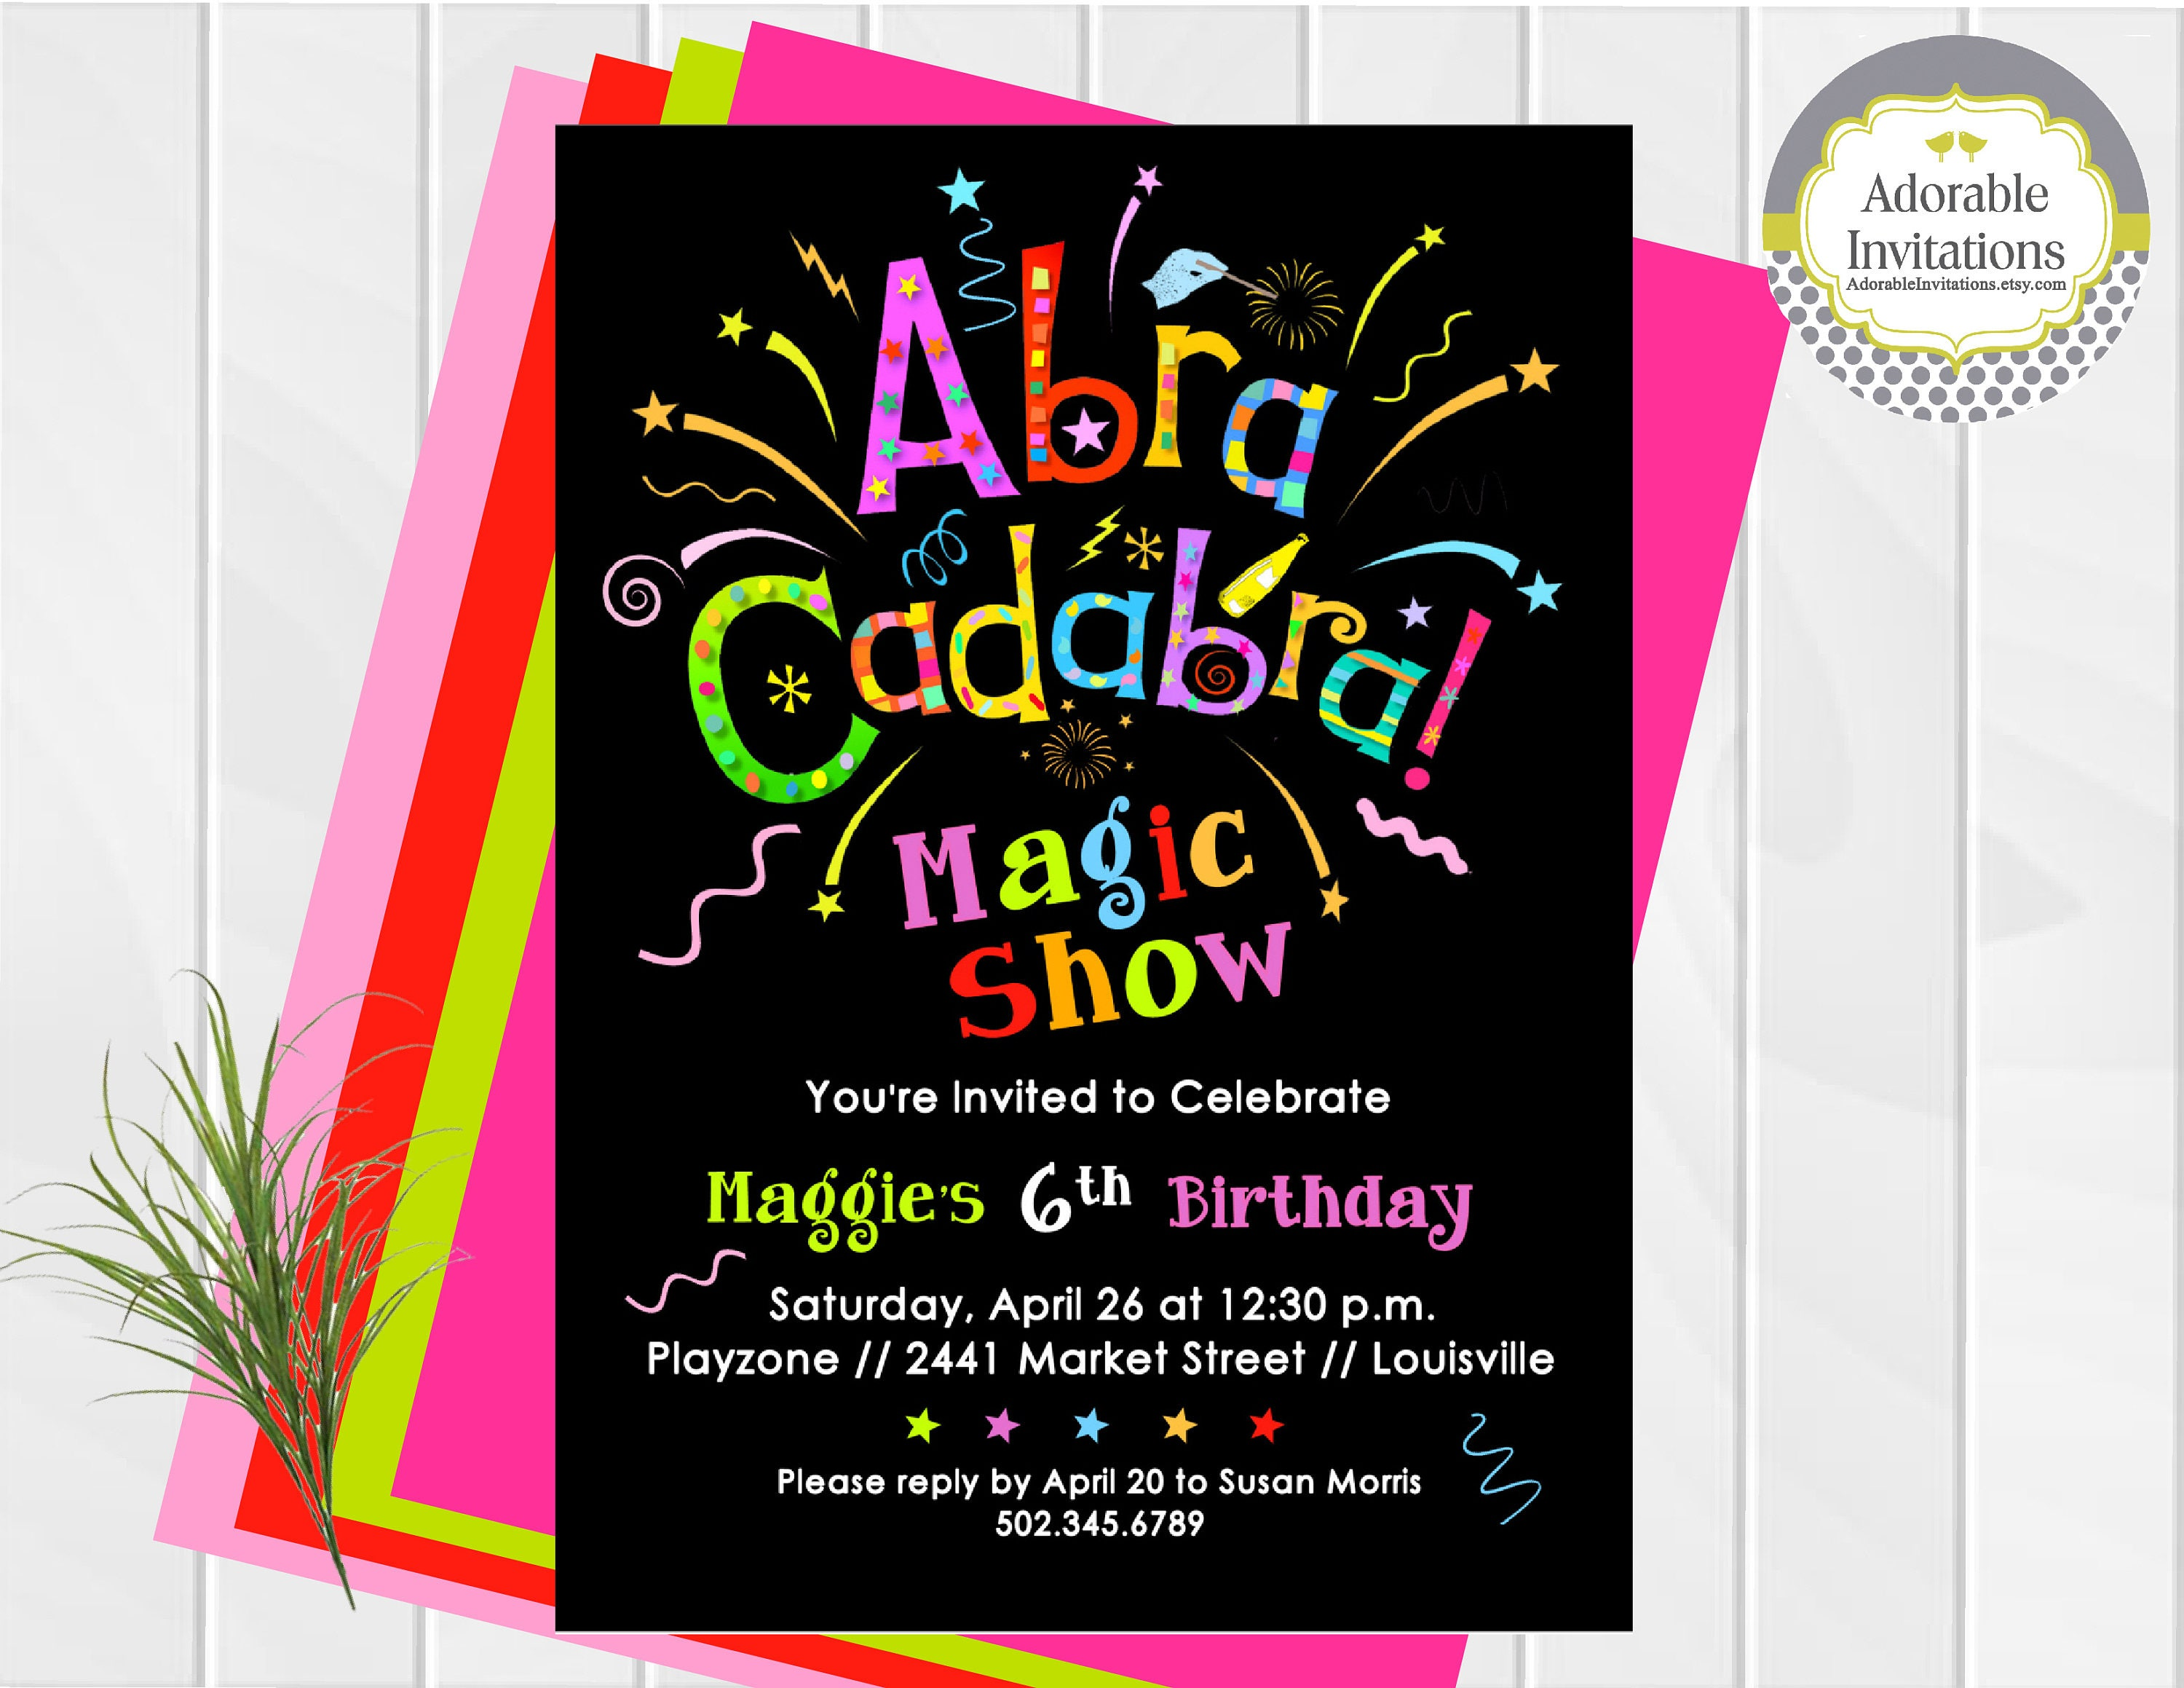 birthday party invitations magic show : Cogimbo.us